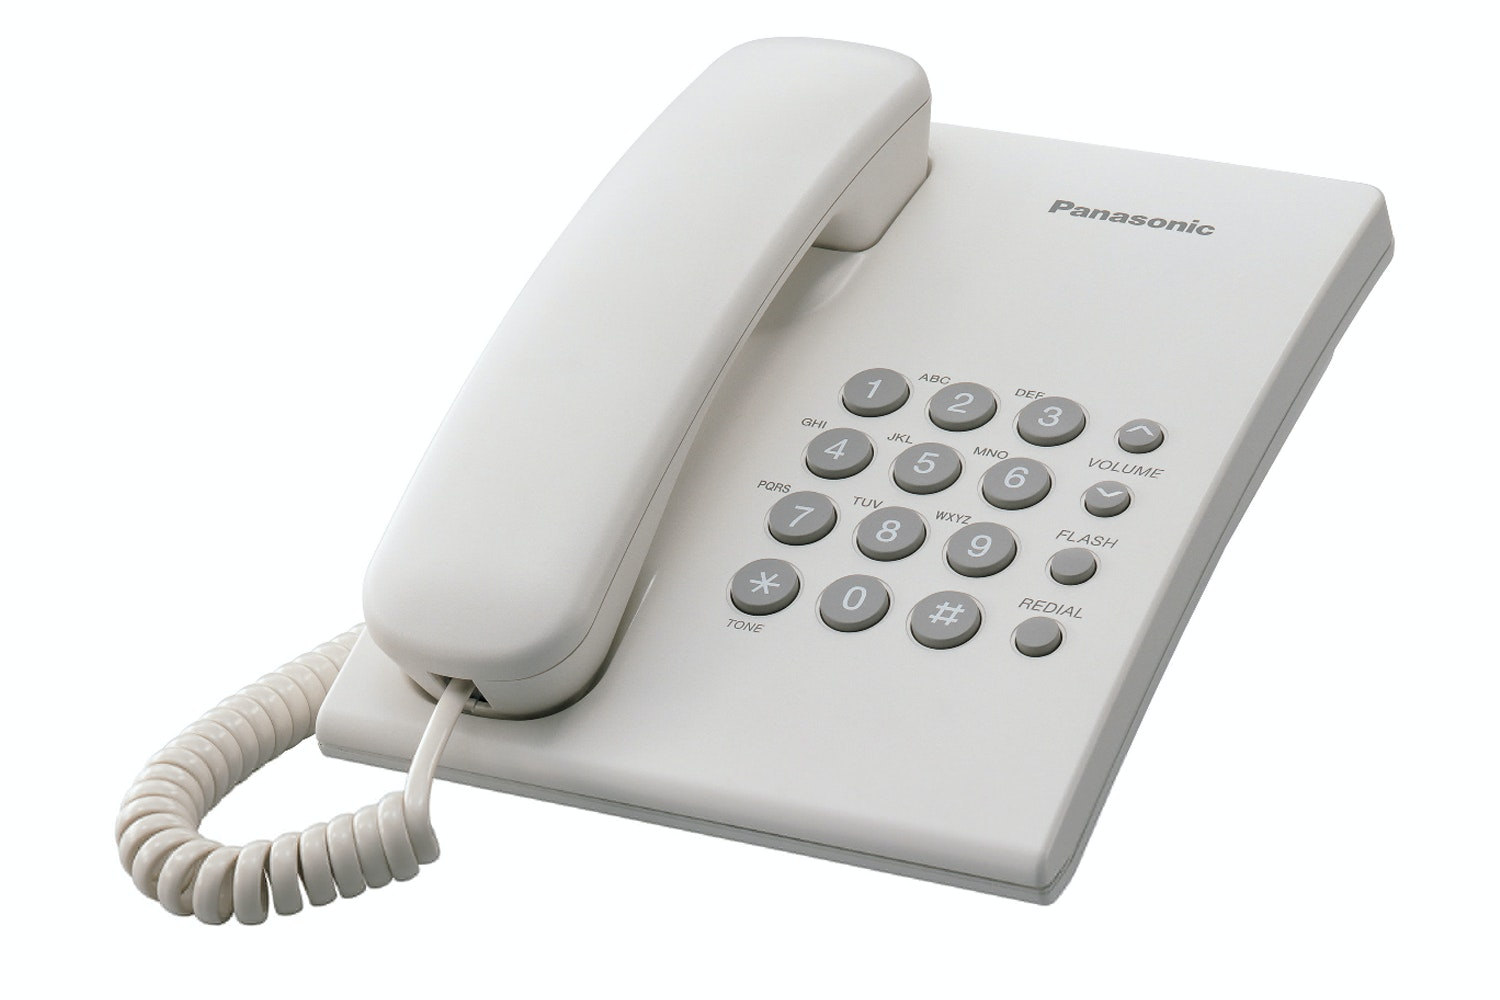 panasonic corded home phone